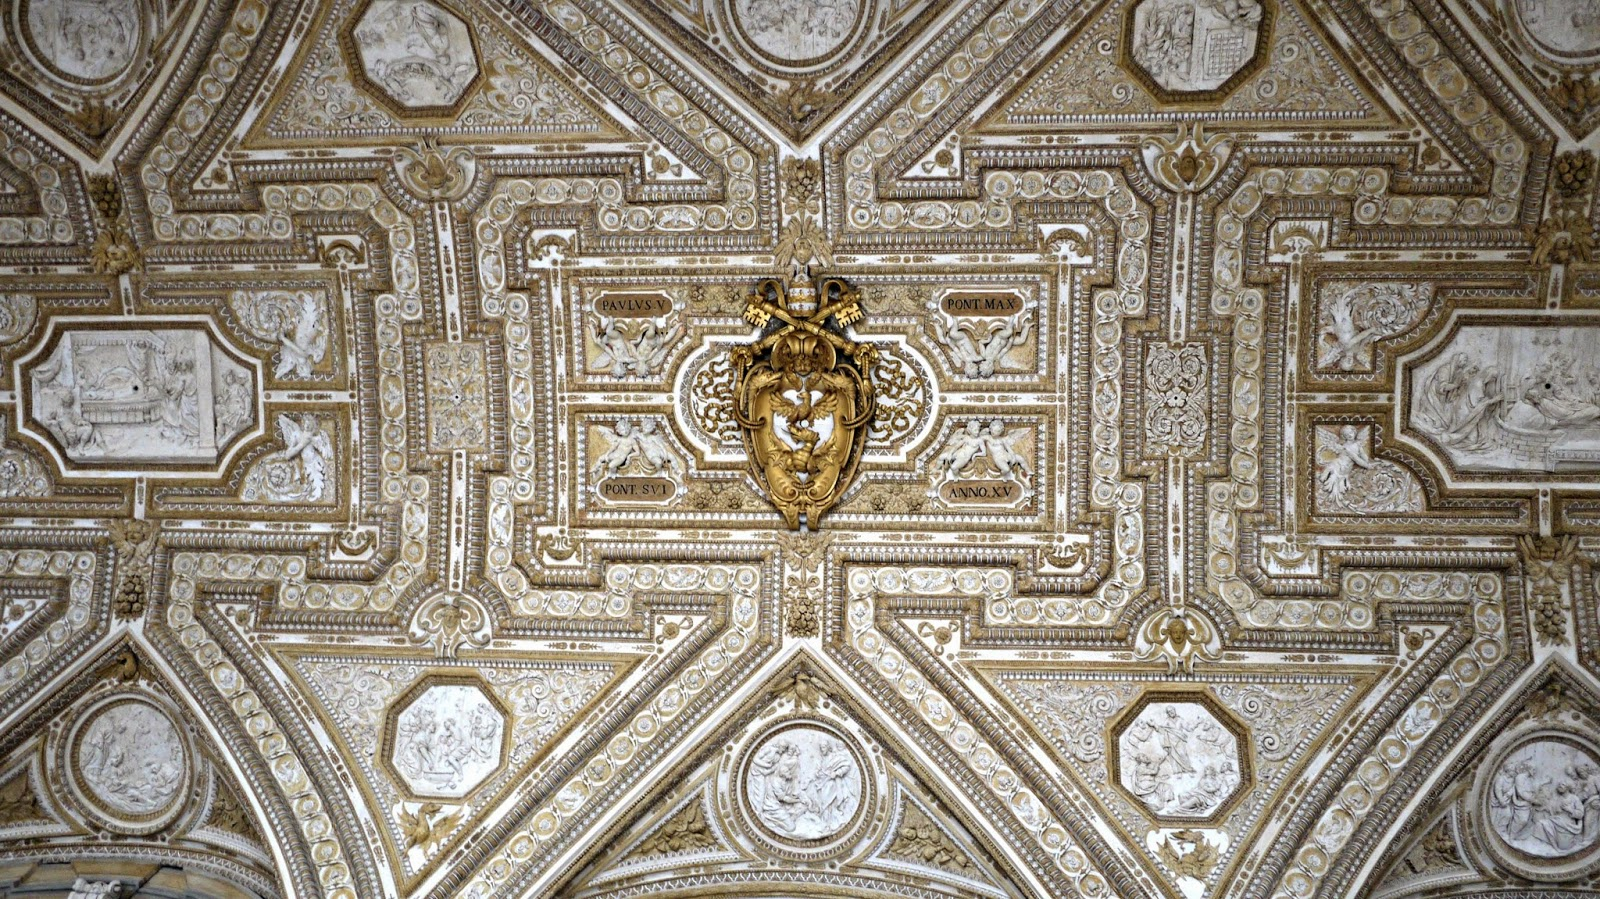 ceiling of st peter's basilica vatican city